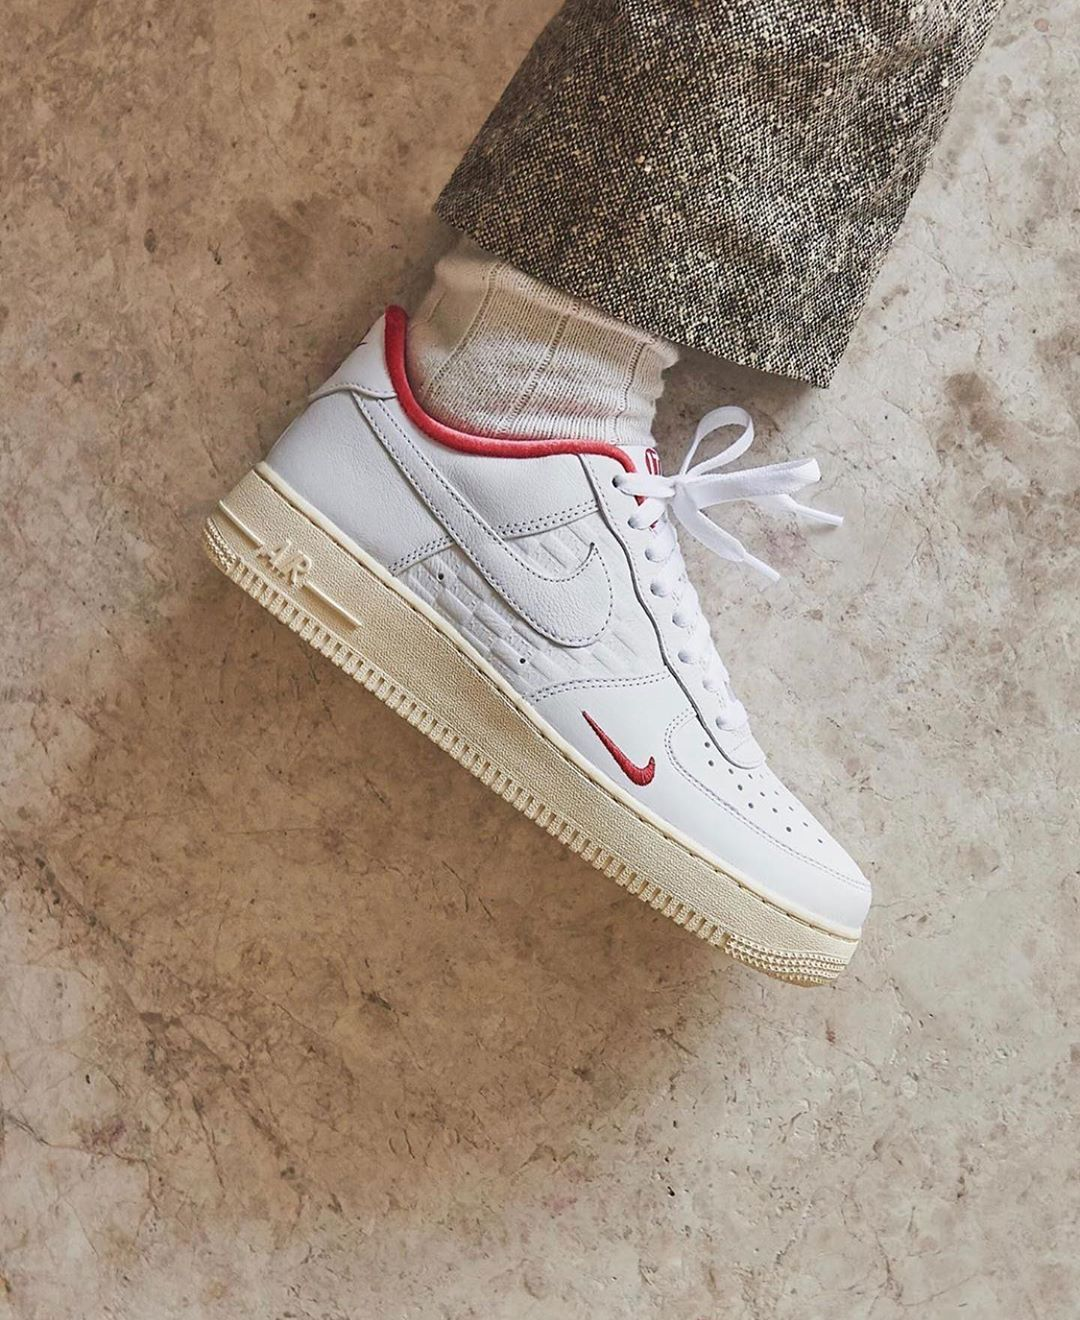 Highsnobiety Sneakers Hskicks On Instagram Take A Closer Look At The Kith X Nike Air Force 1 Co Jp To Commemorate Kith S Sneakers Nike Air Force Nike Air